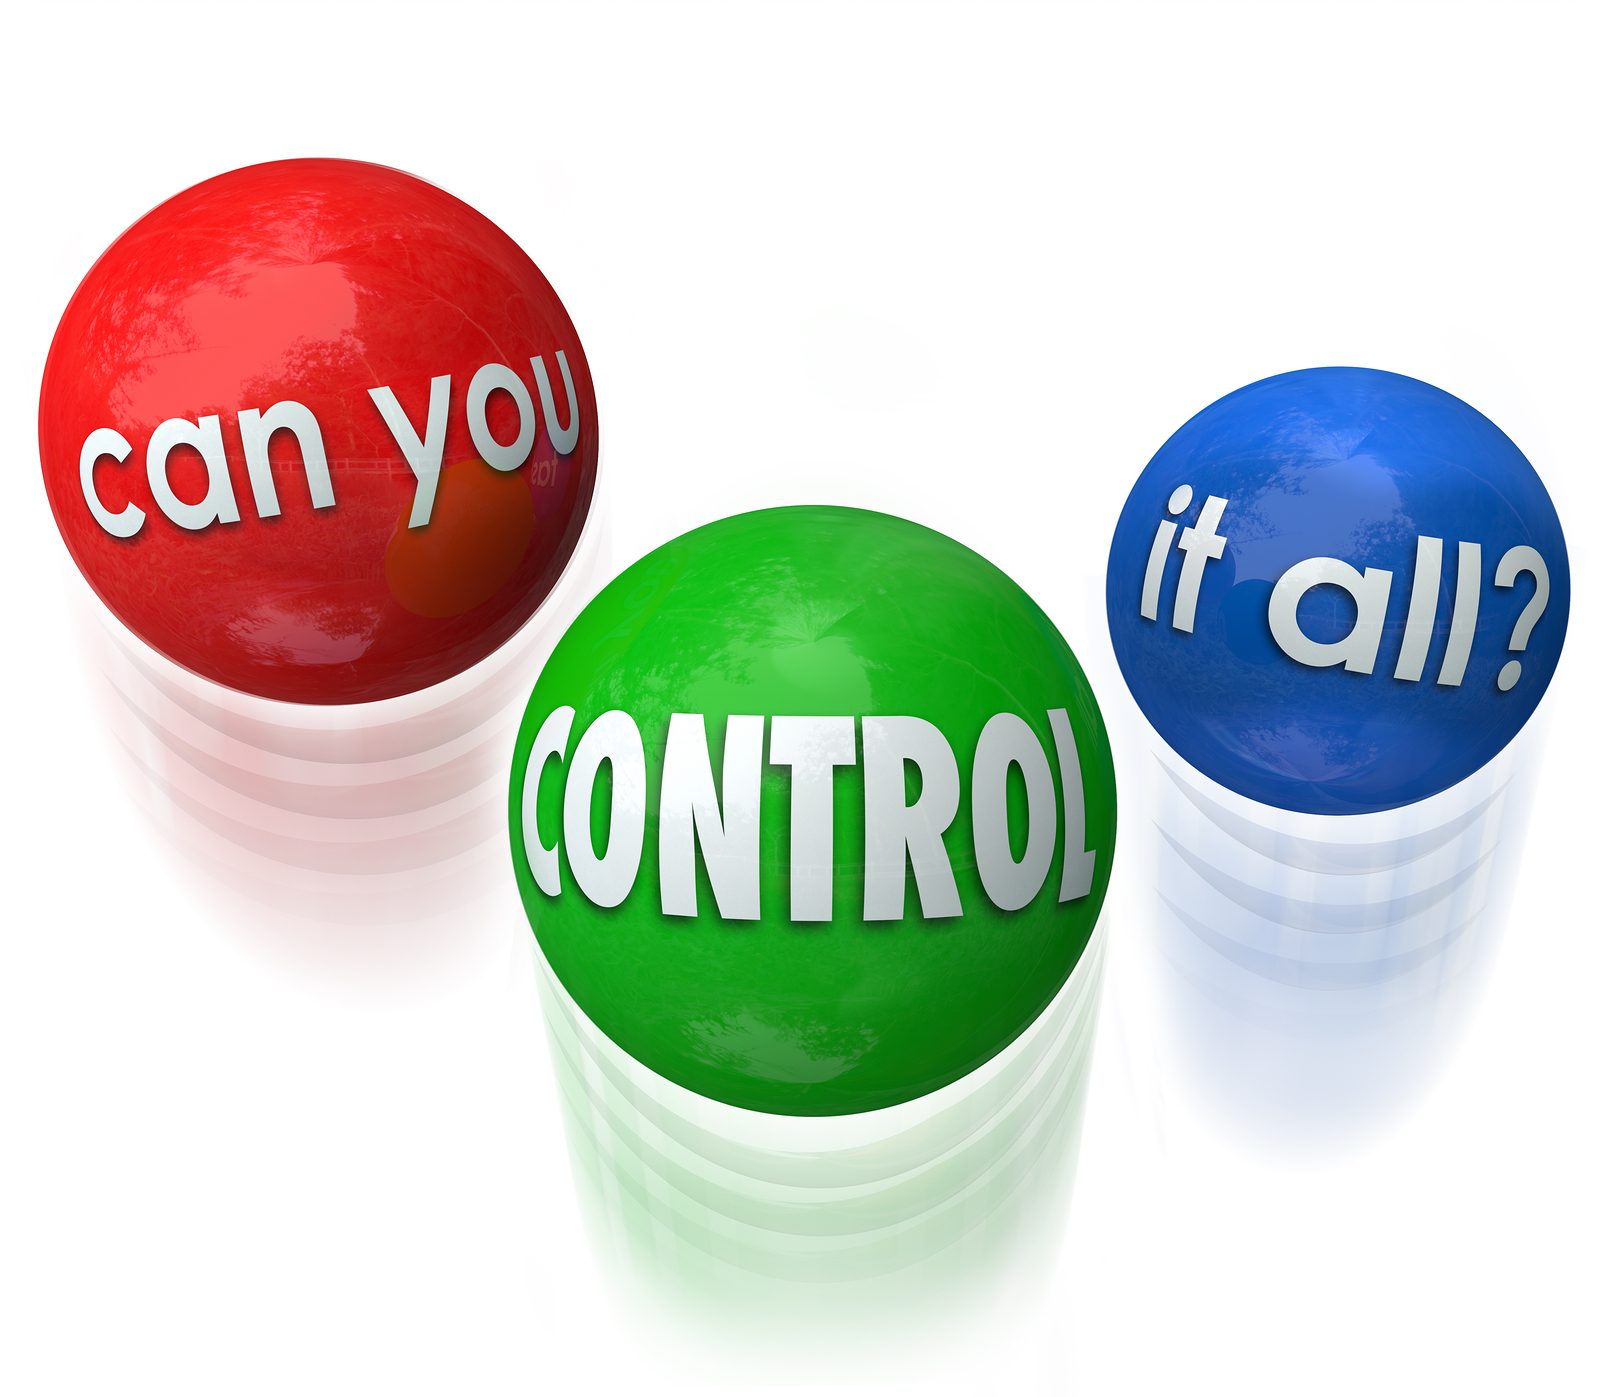 Control it all